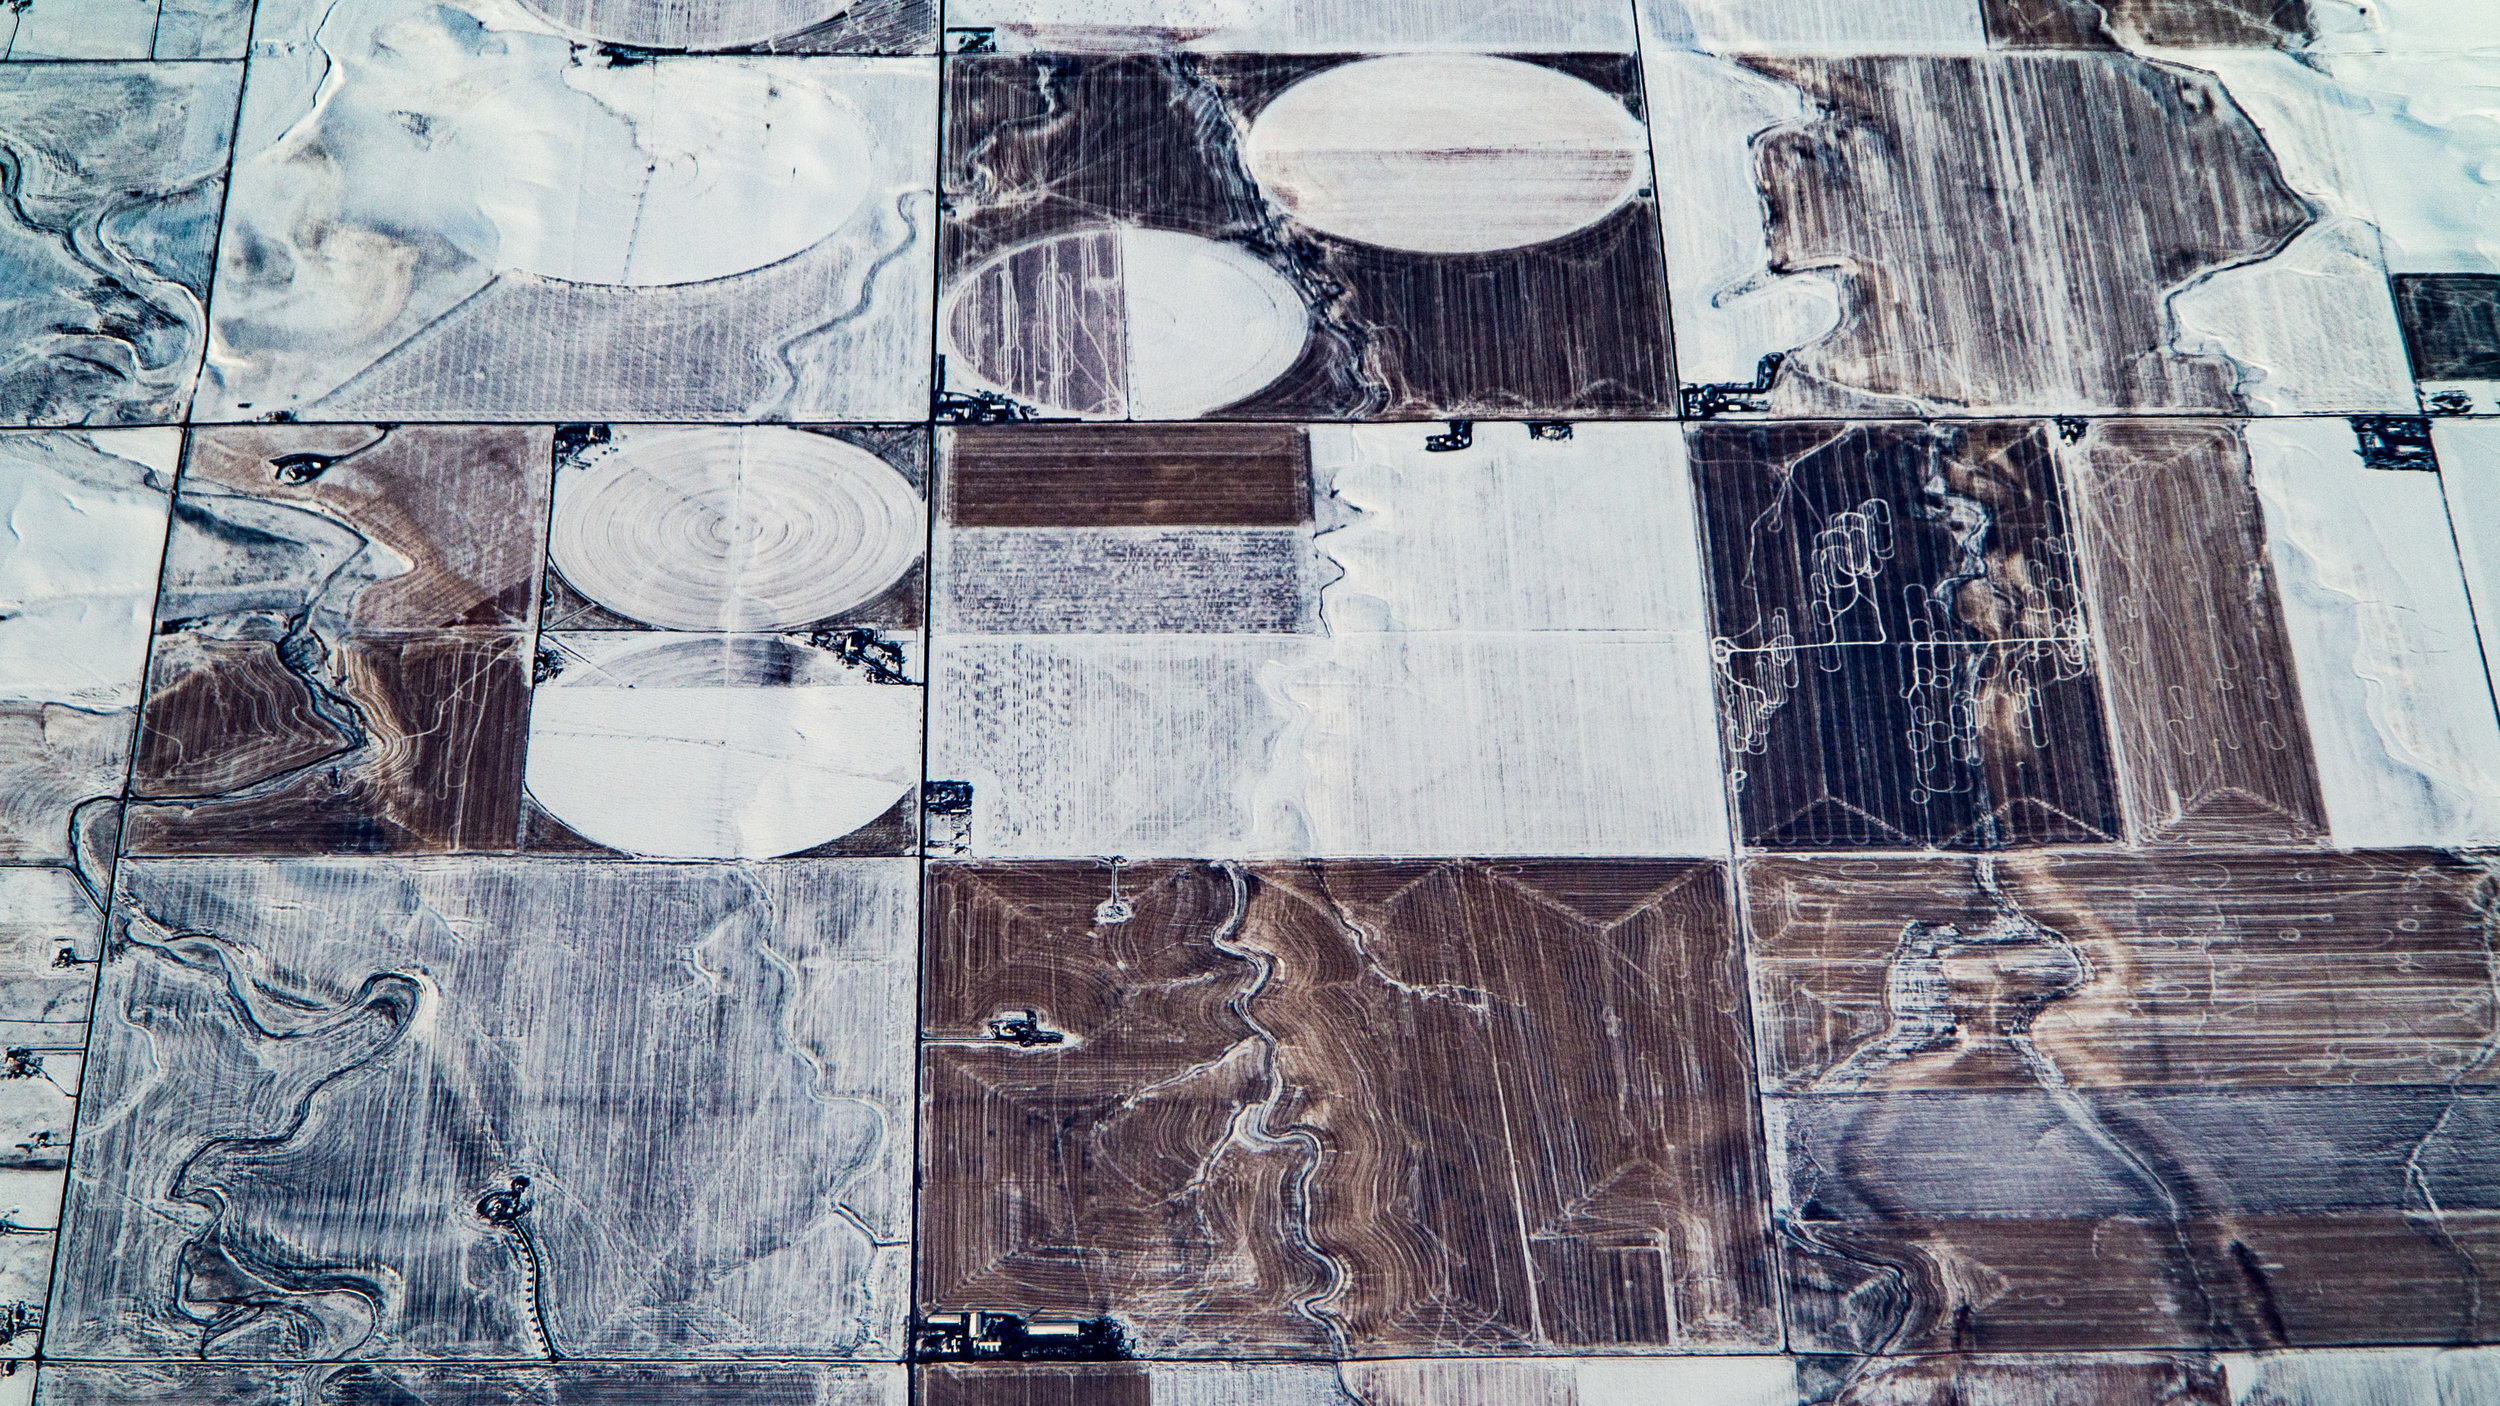 03 - East of Denver Co 20121111 5mb-2068-1-16x9.jpg